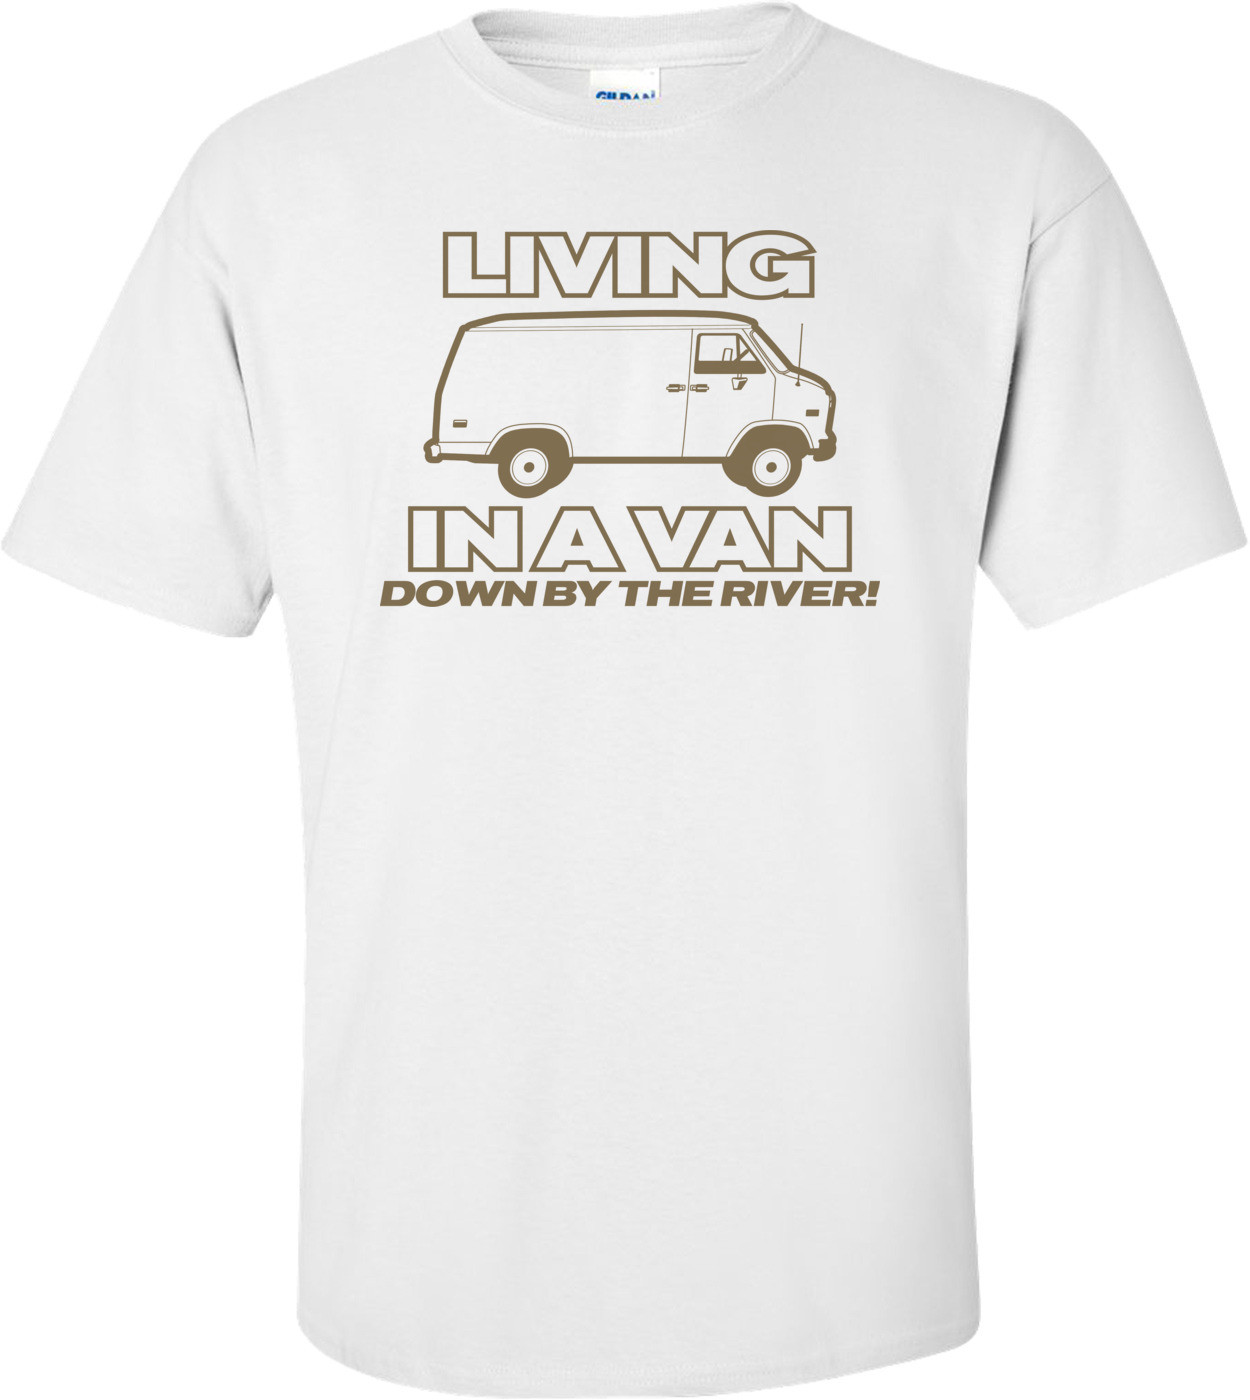 Living In A Van Down By The River Funny T-shirt